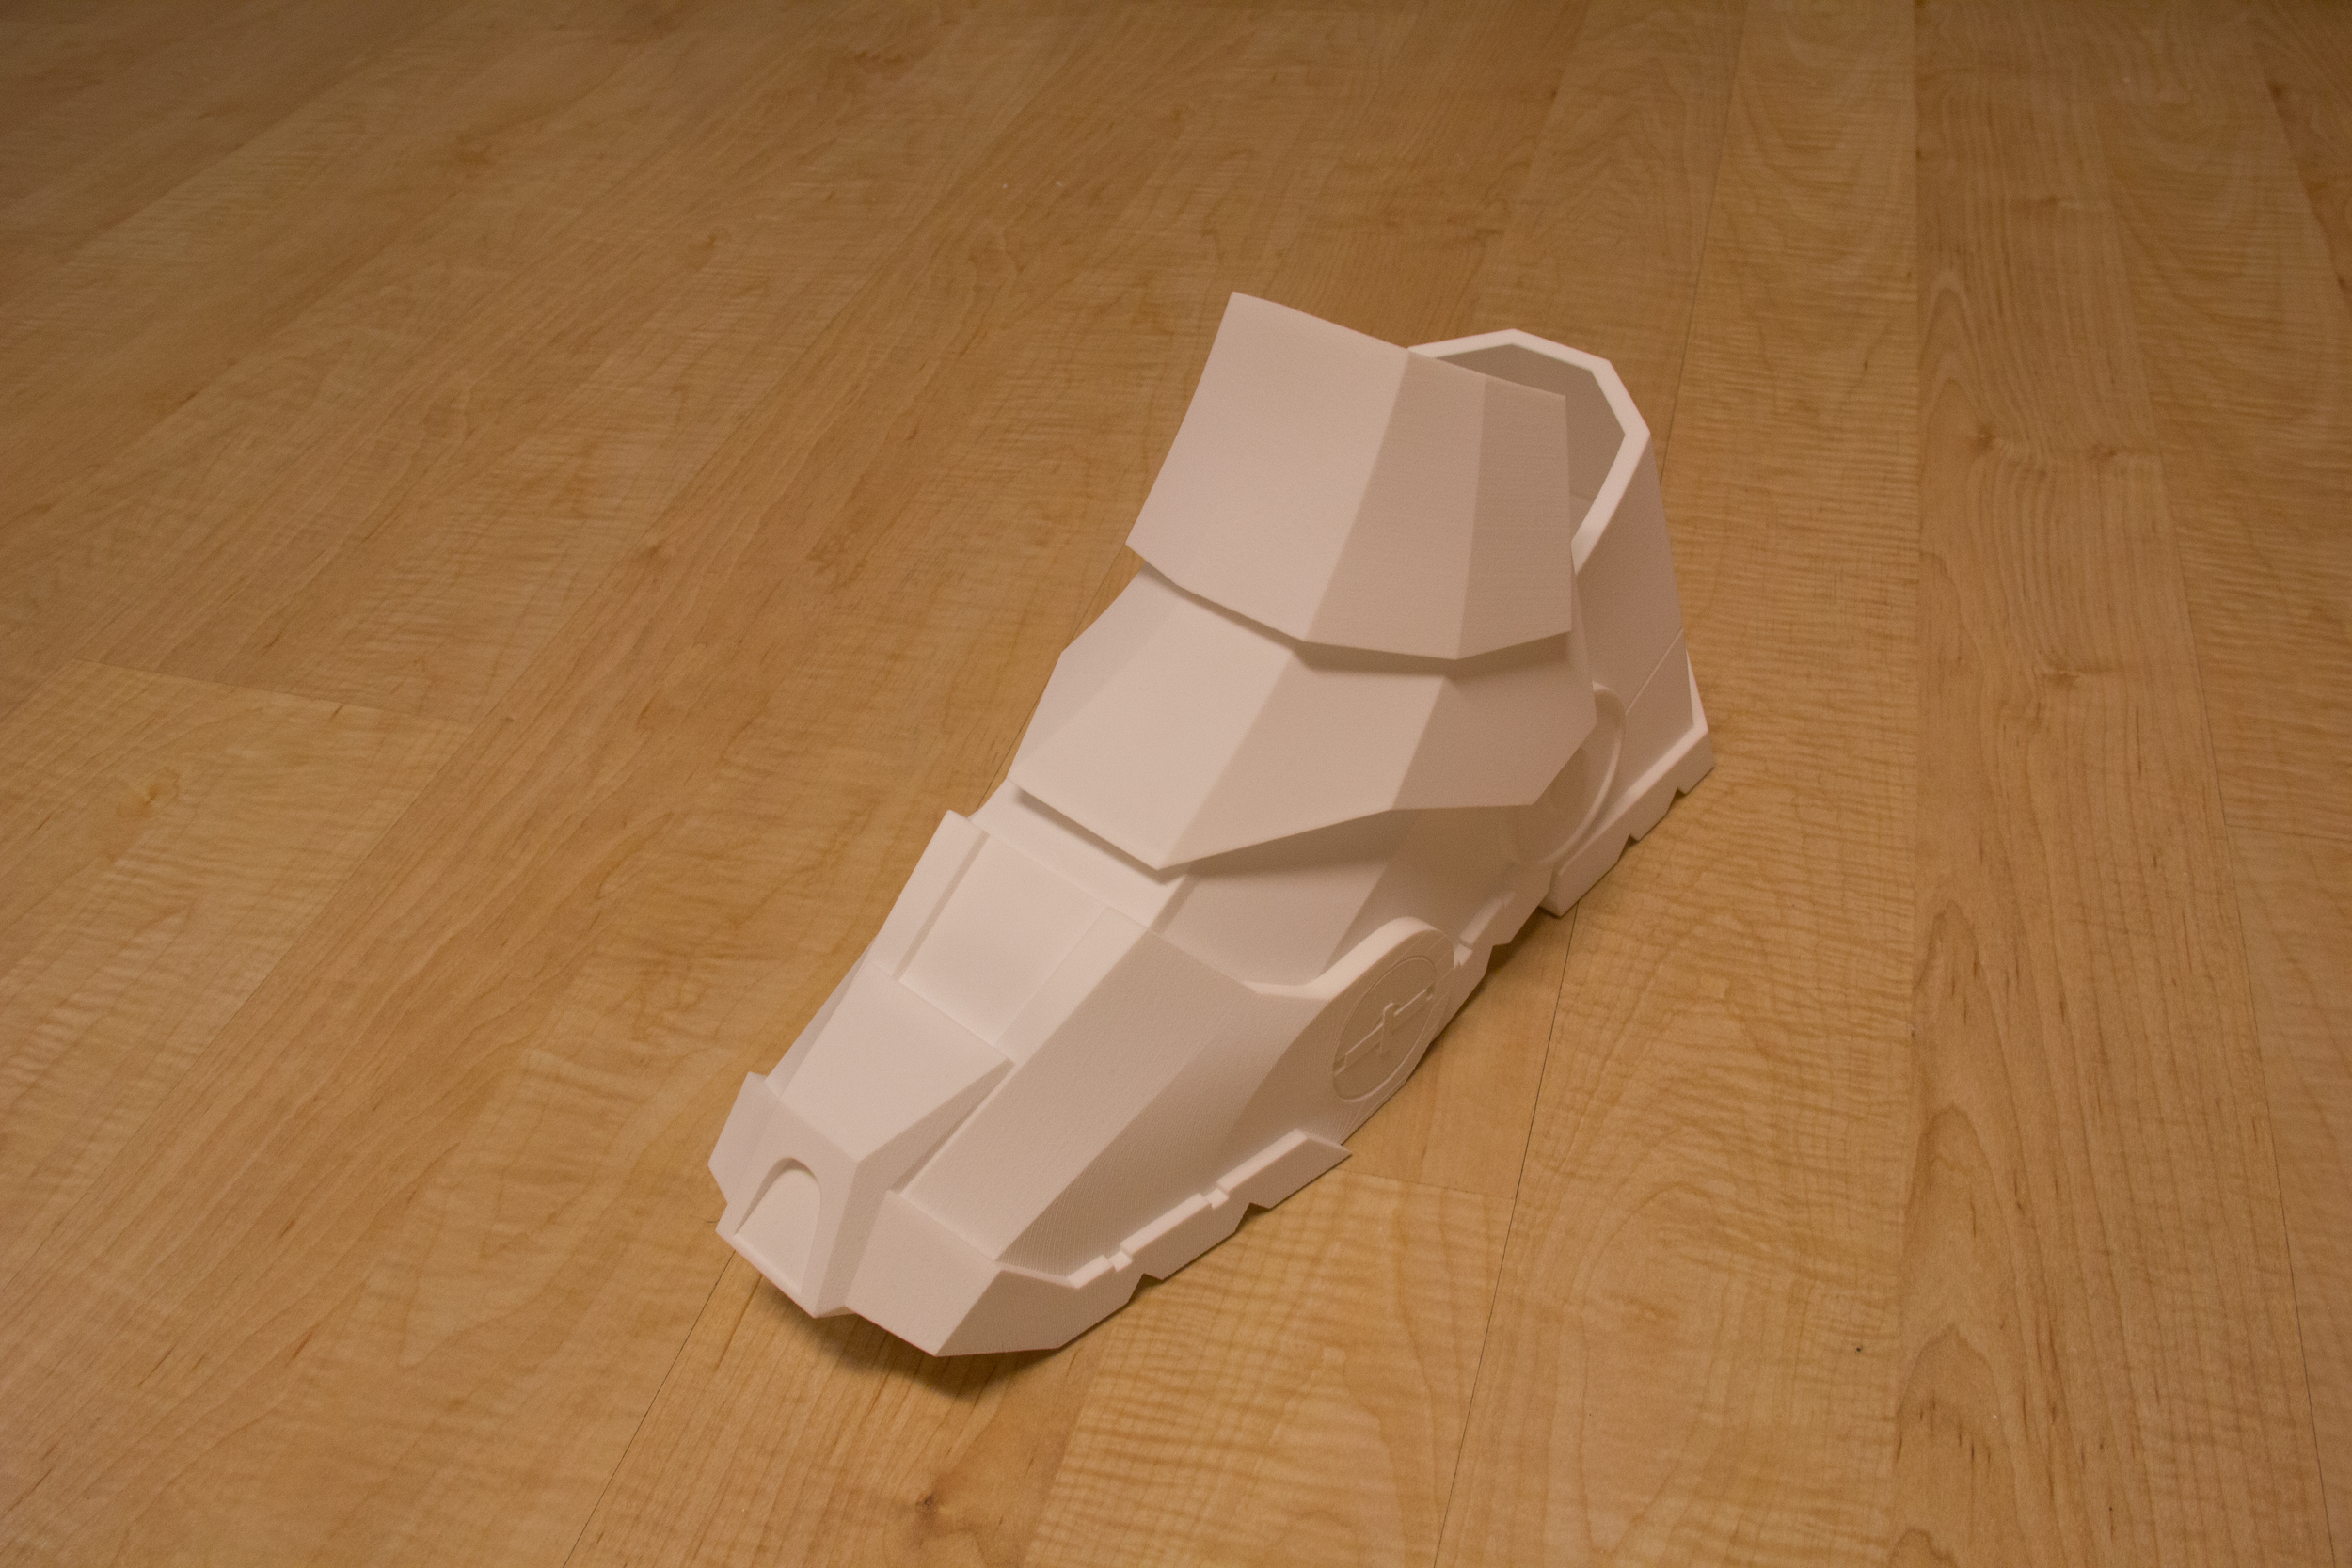 Boot & Ankle Armor (3D Print)